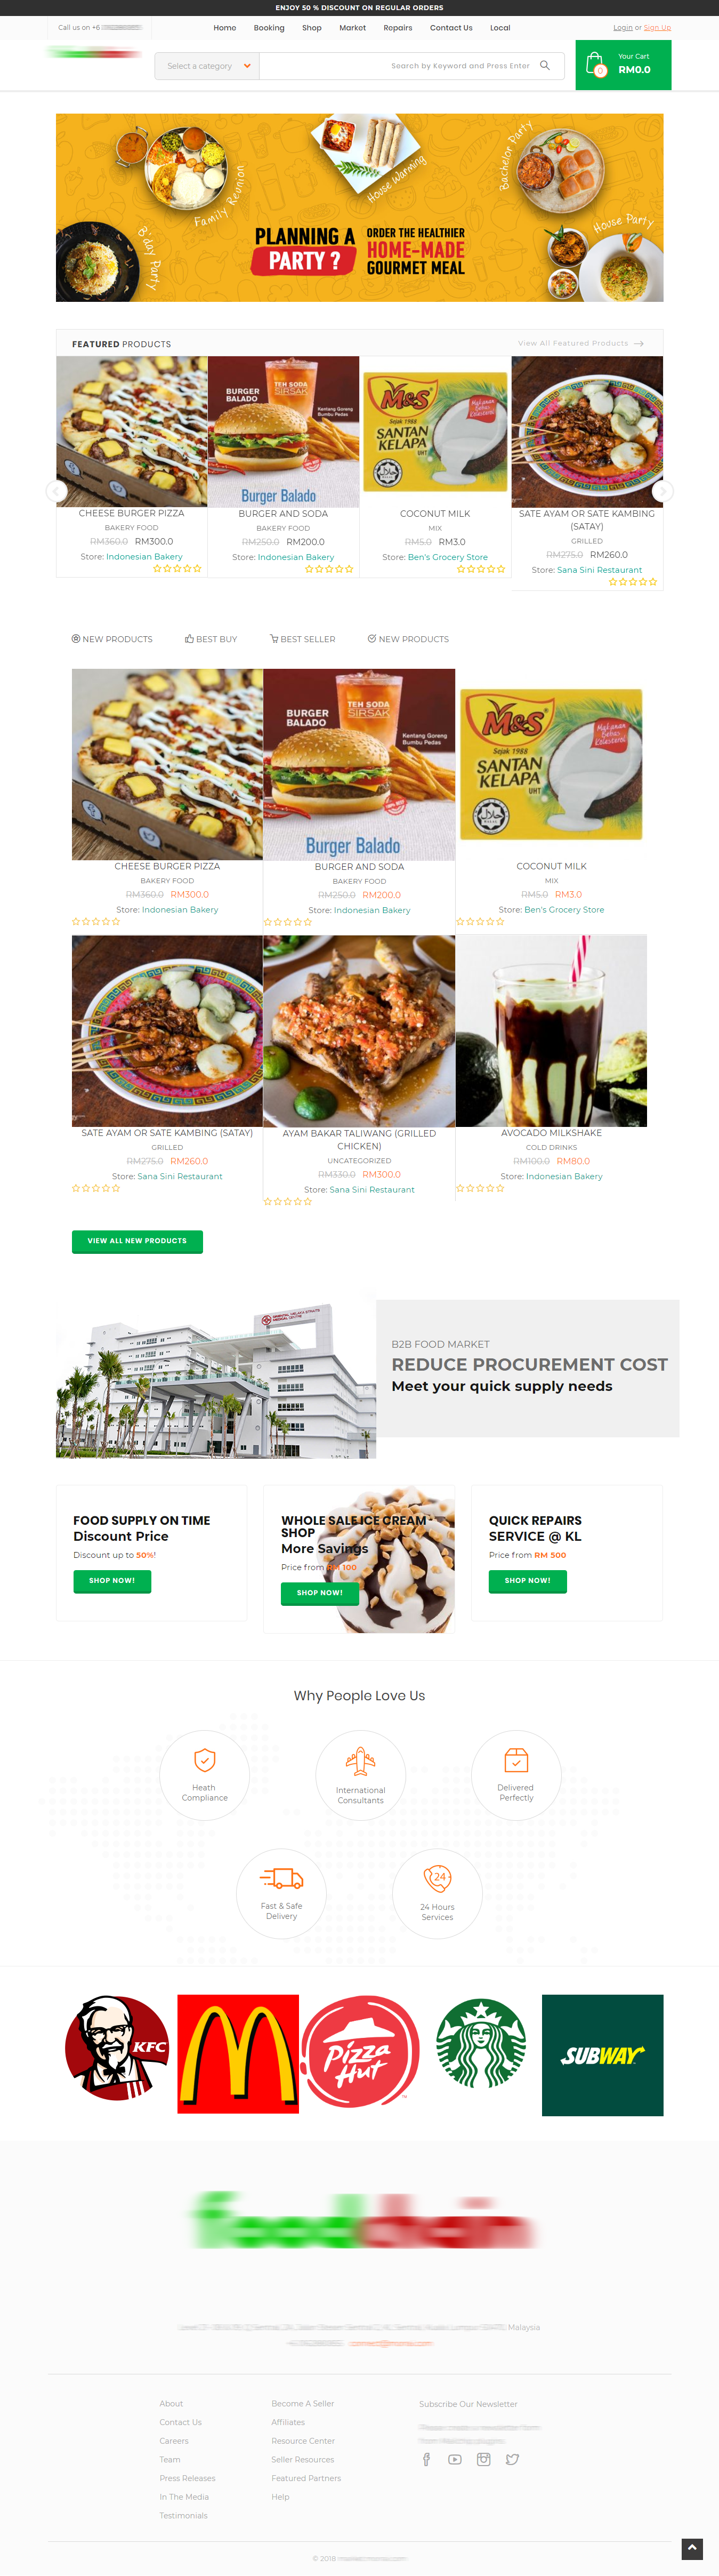 Food B2B Multivendors Marketplace Home Screenshot